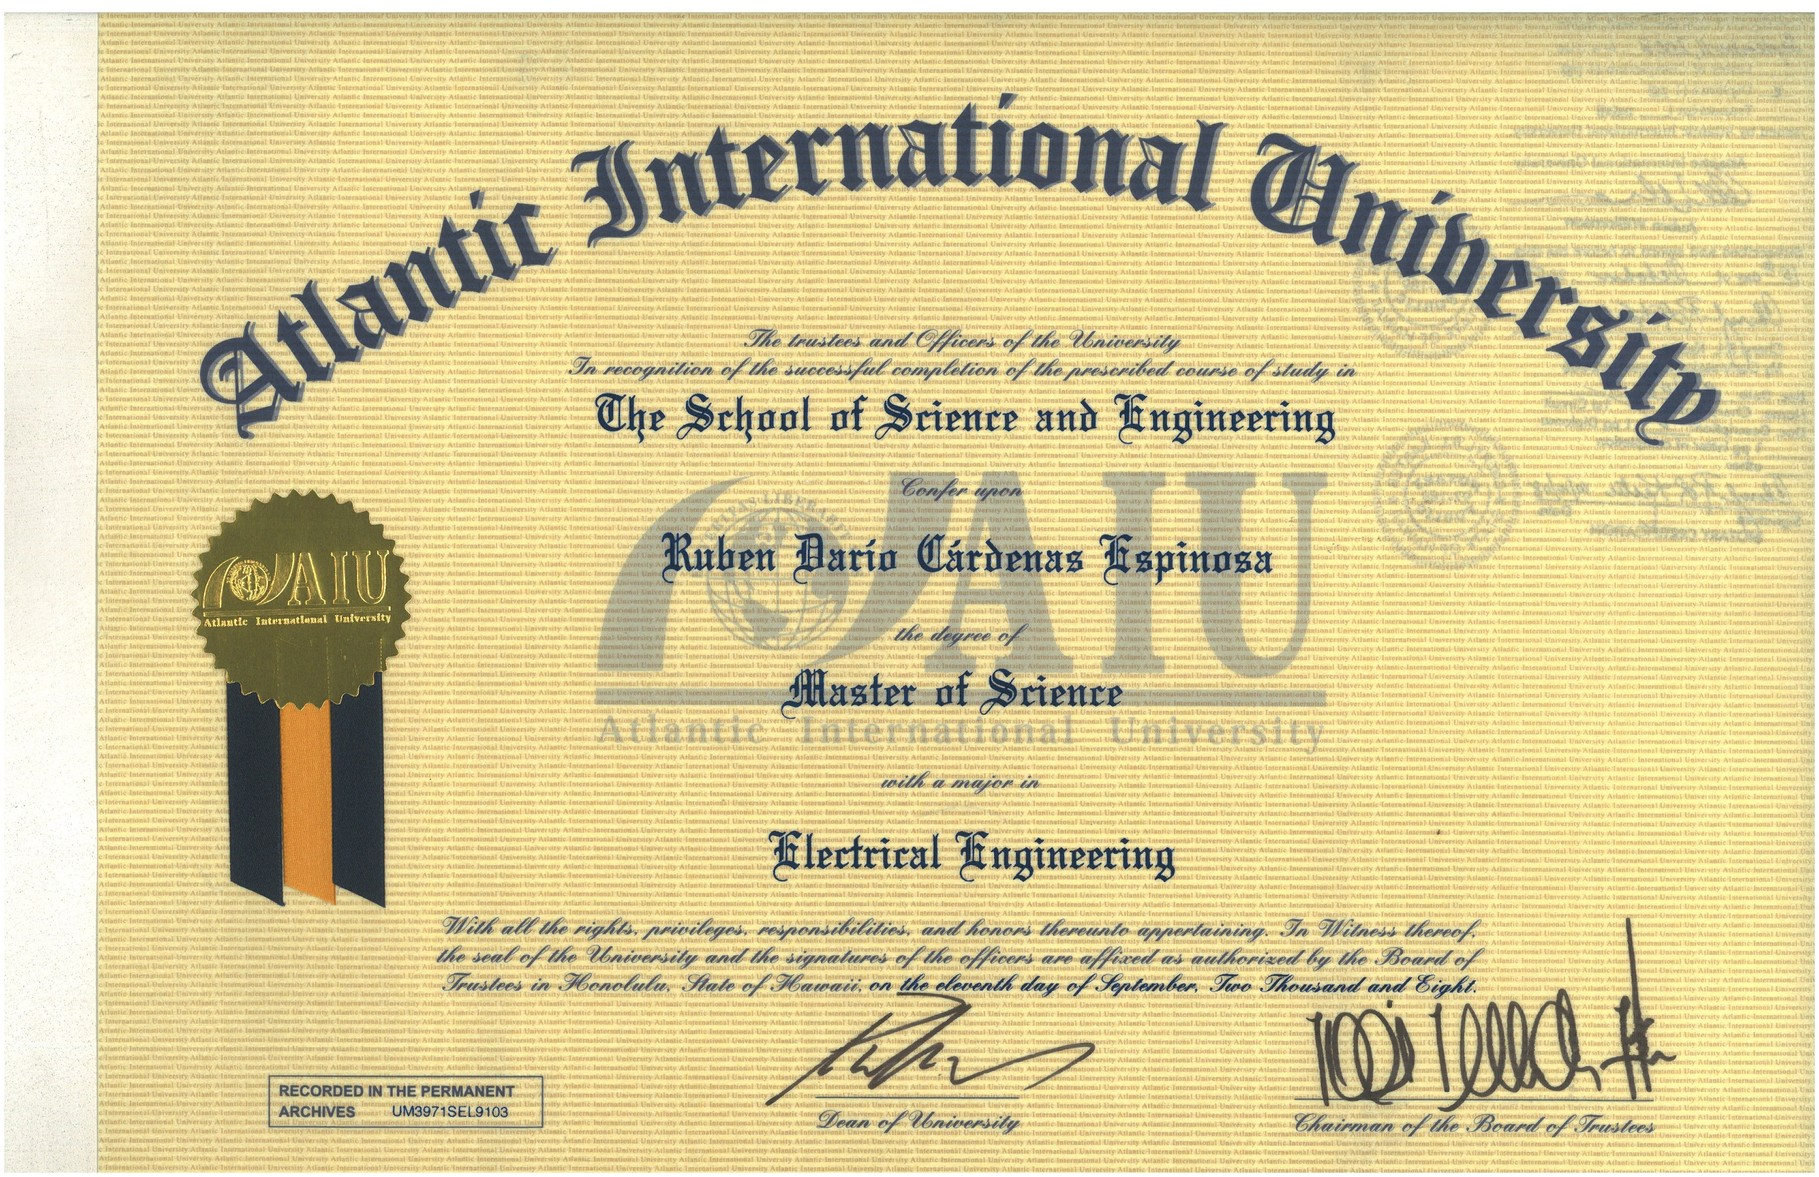 Master of Sciences with major in Electrical Engineering